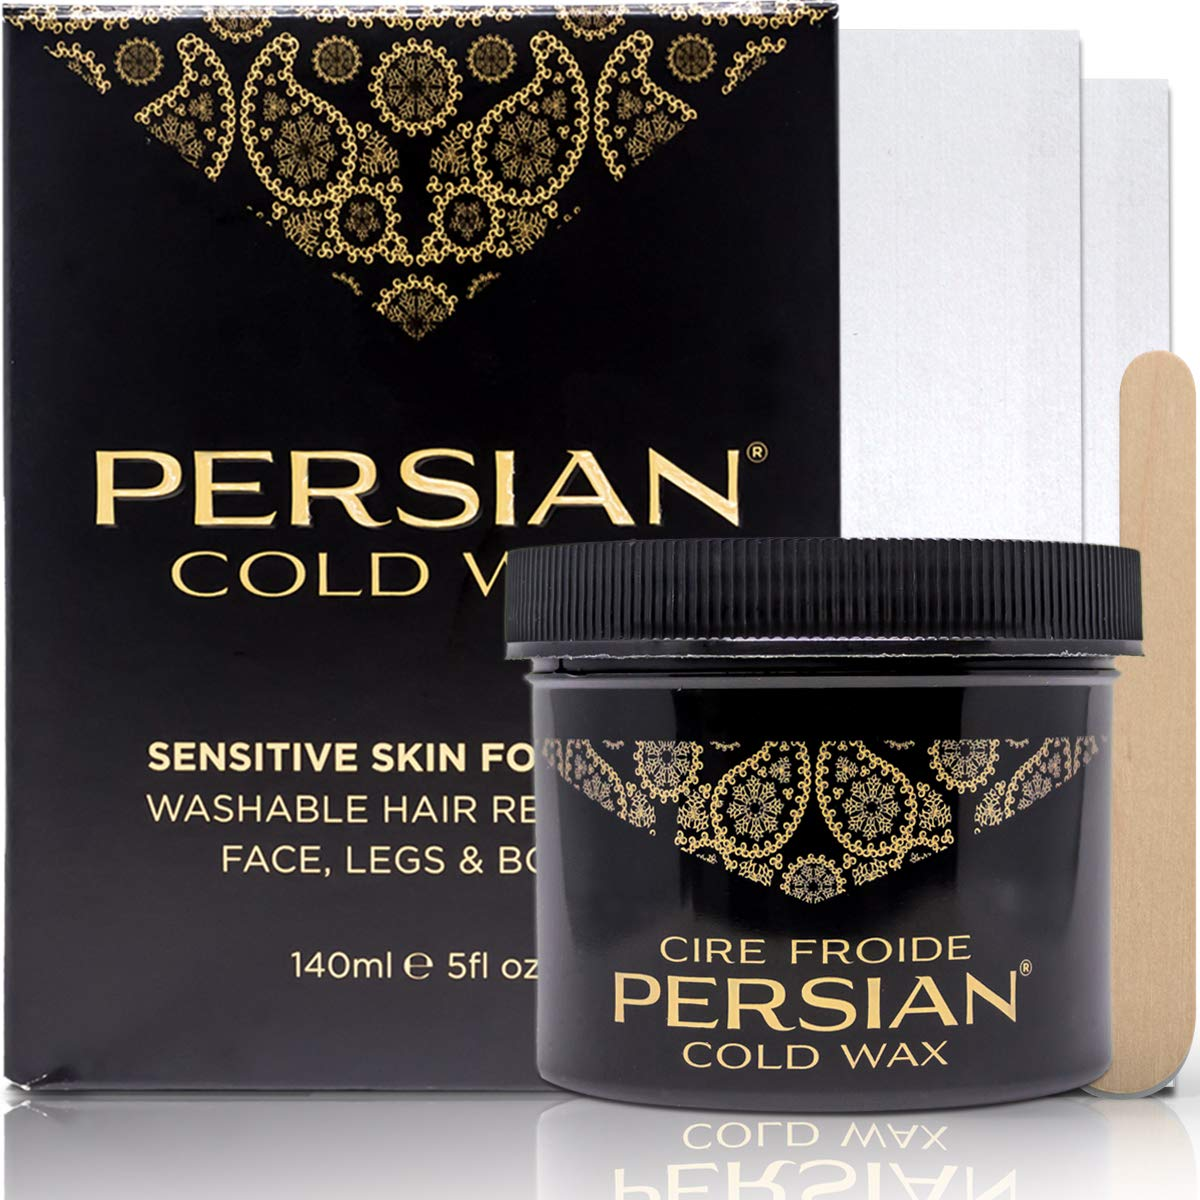 Parissa Persian Cold Wax Hair Remover Kit, Small, 5 Oz